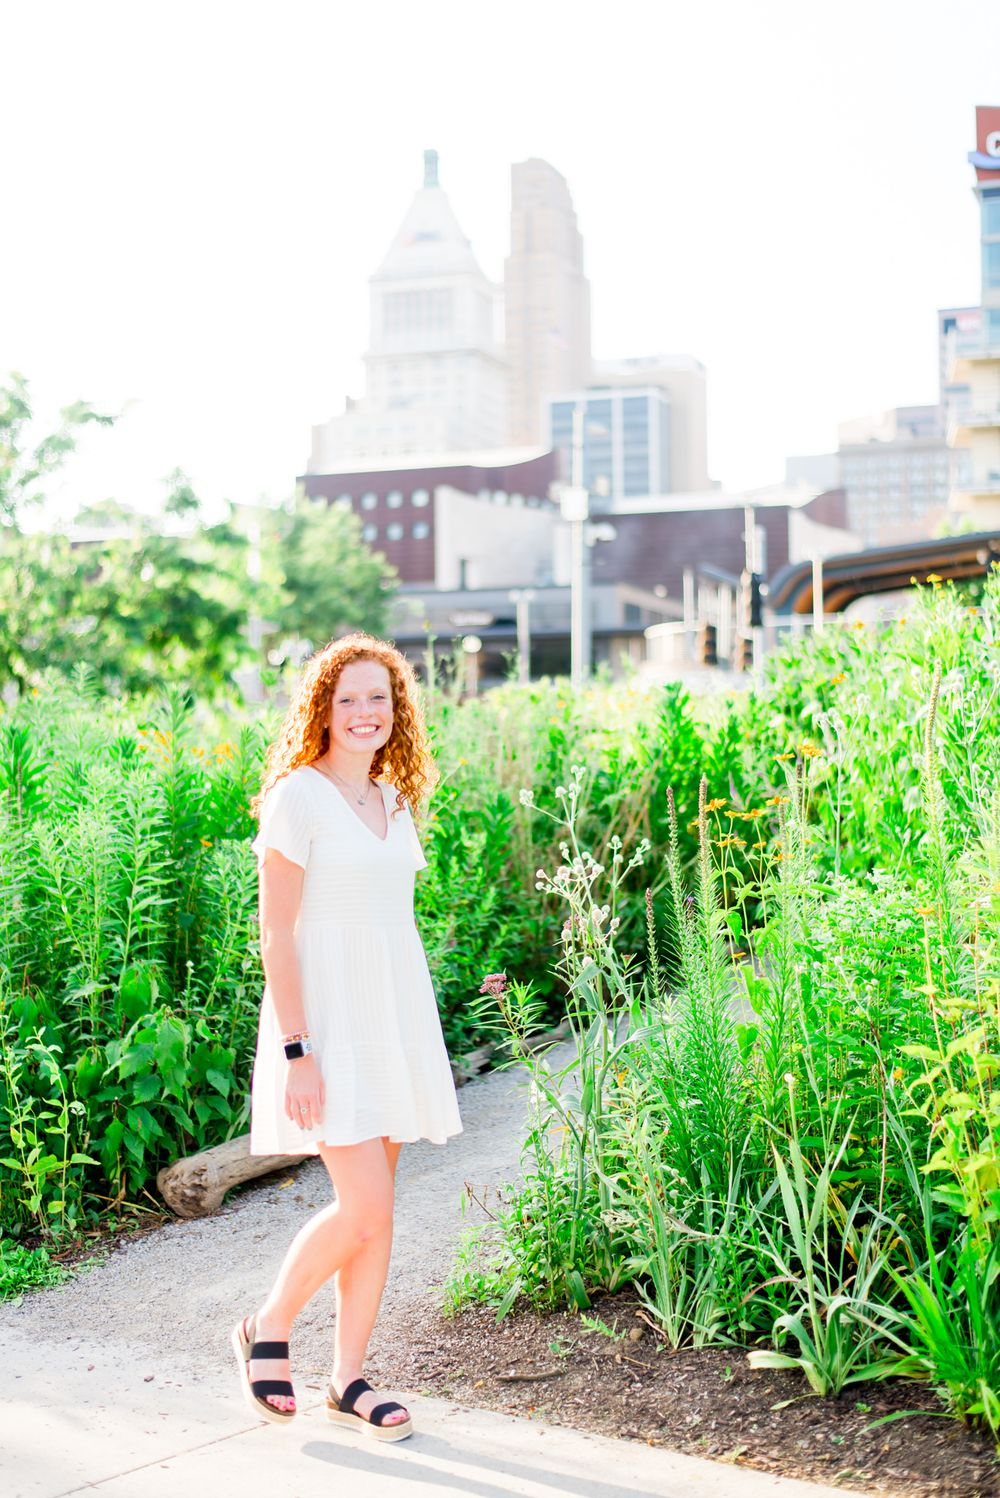 woman with red curly hair in white dress walks through flowers at Smale Park in downtown Cincinnati for senior pictures